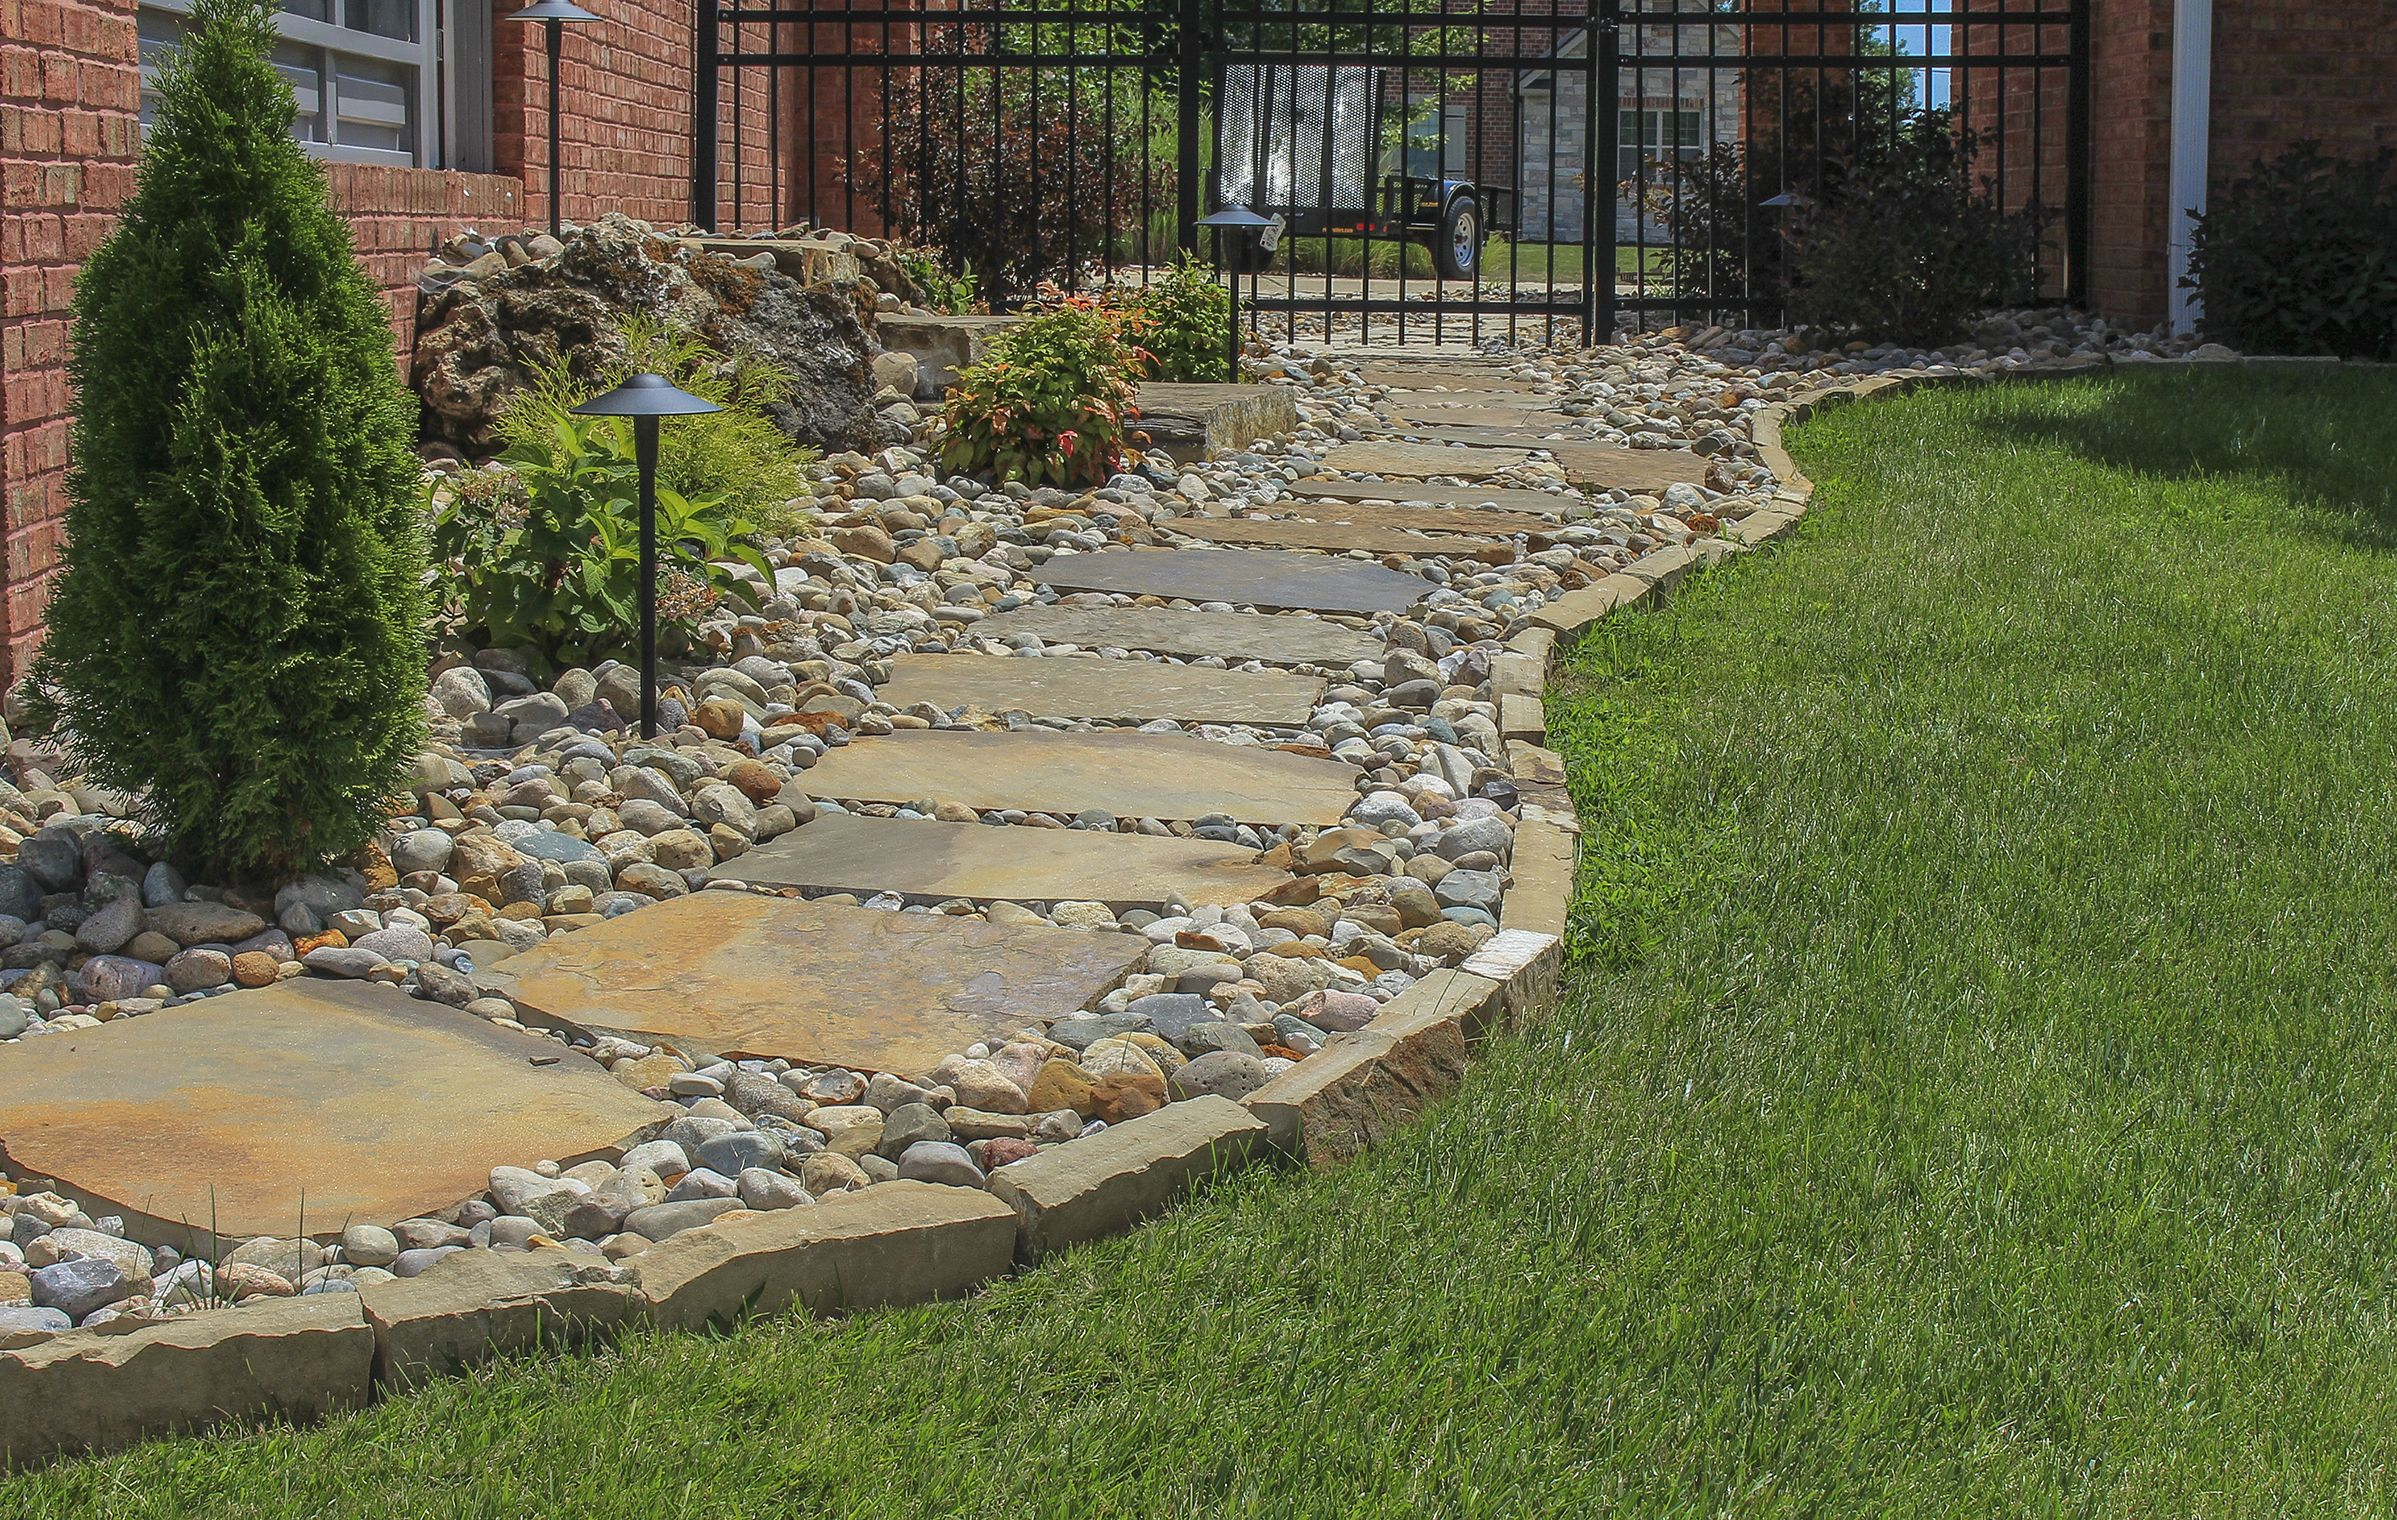 Gorgeous Natural Stone Walkway Accented With Natural Stone Edging And Gravel Love This Look Backyard Walkway Front Yard Landscaping Stone Walkway